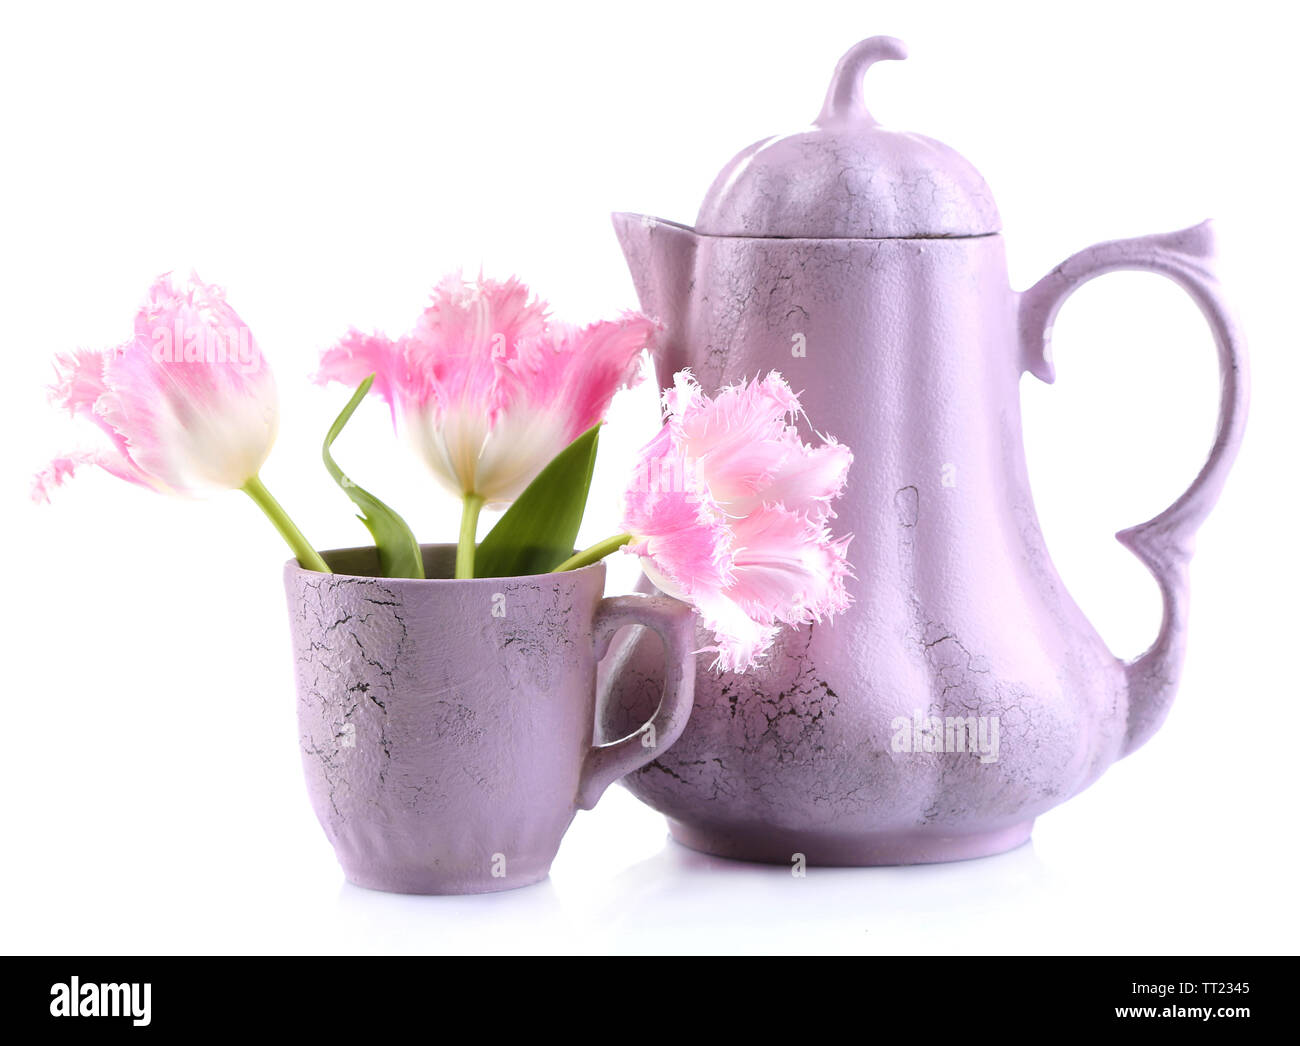 Cup of tea with teapot isolated on white - Stock Image